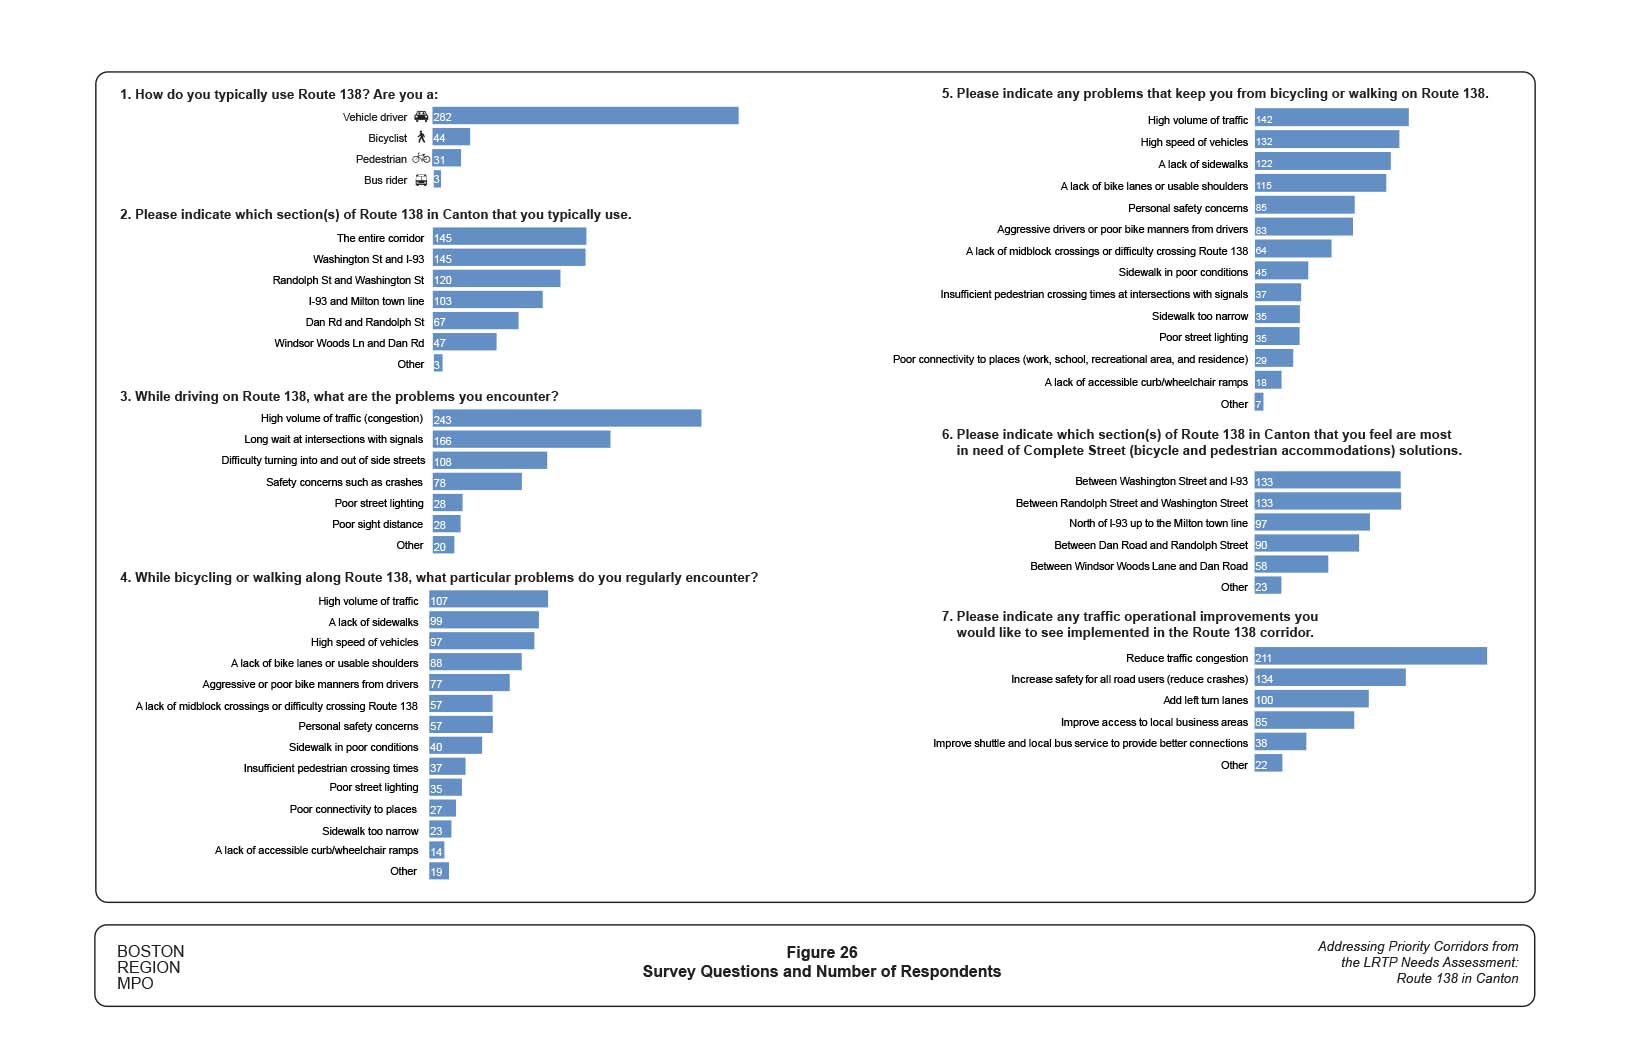 Figure 26 shows the results of a survey of users of Route 138. There are